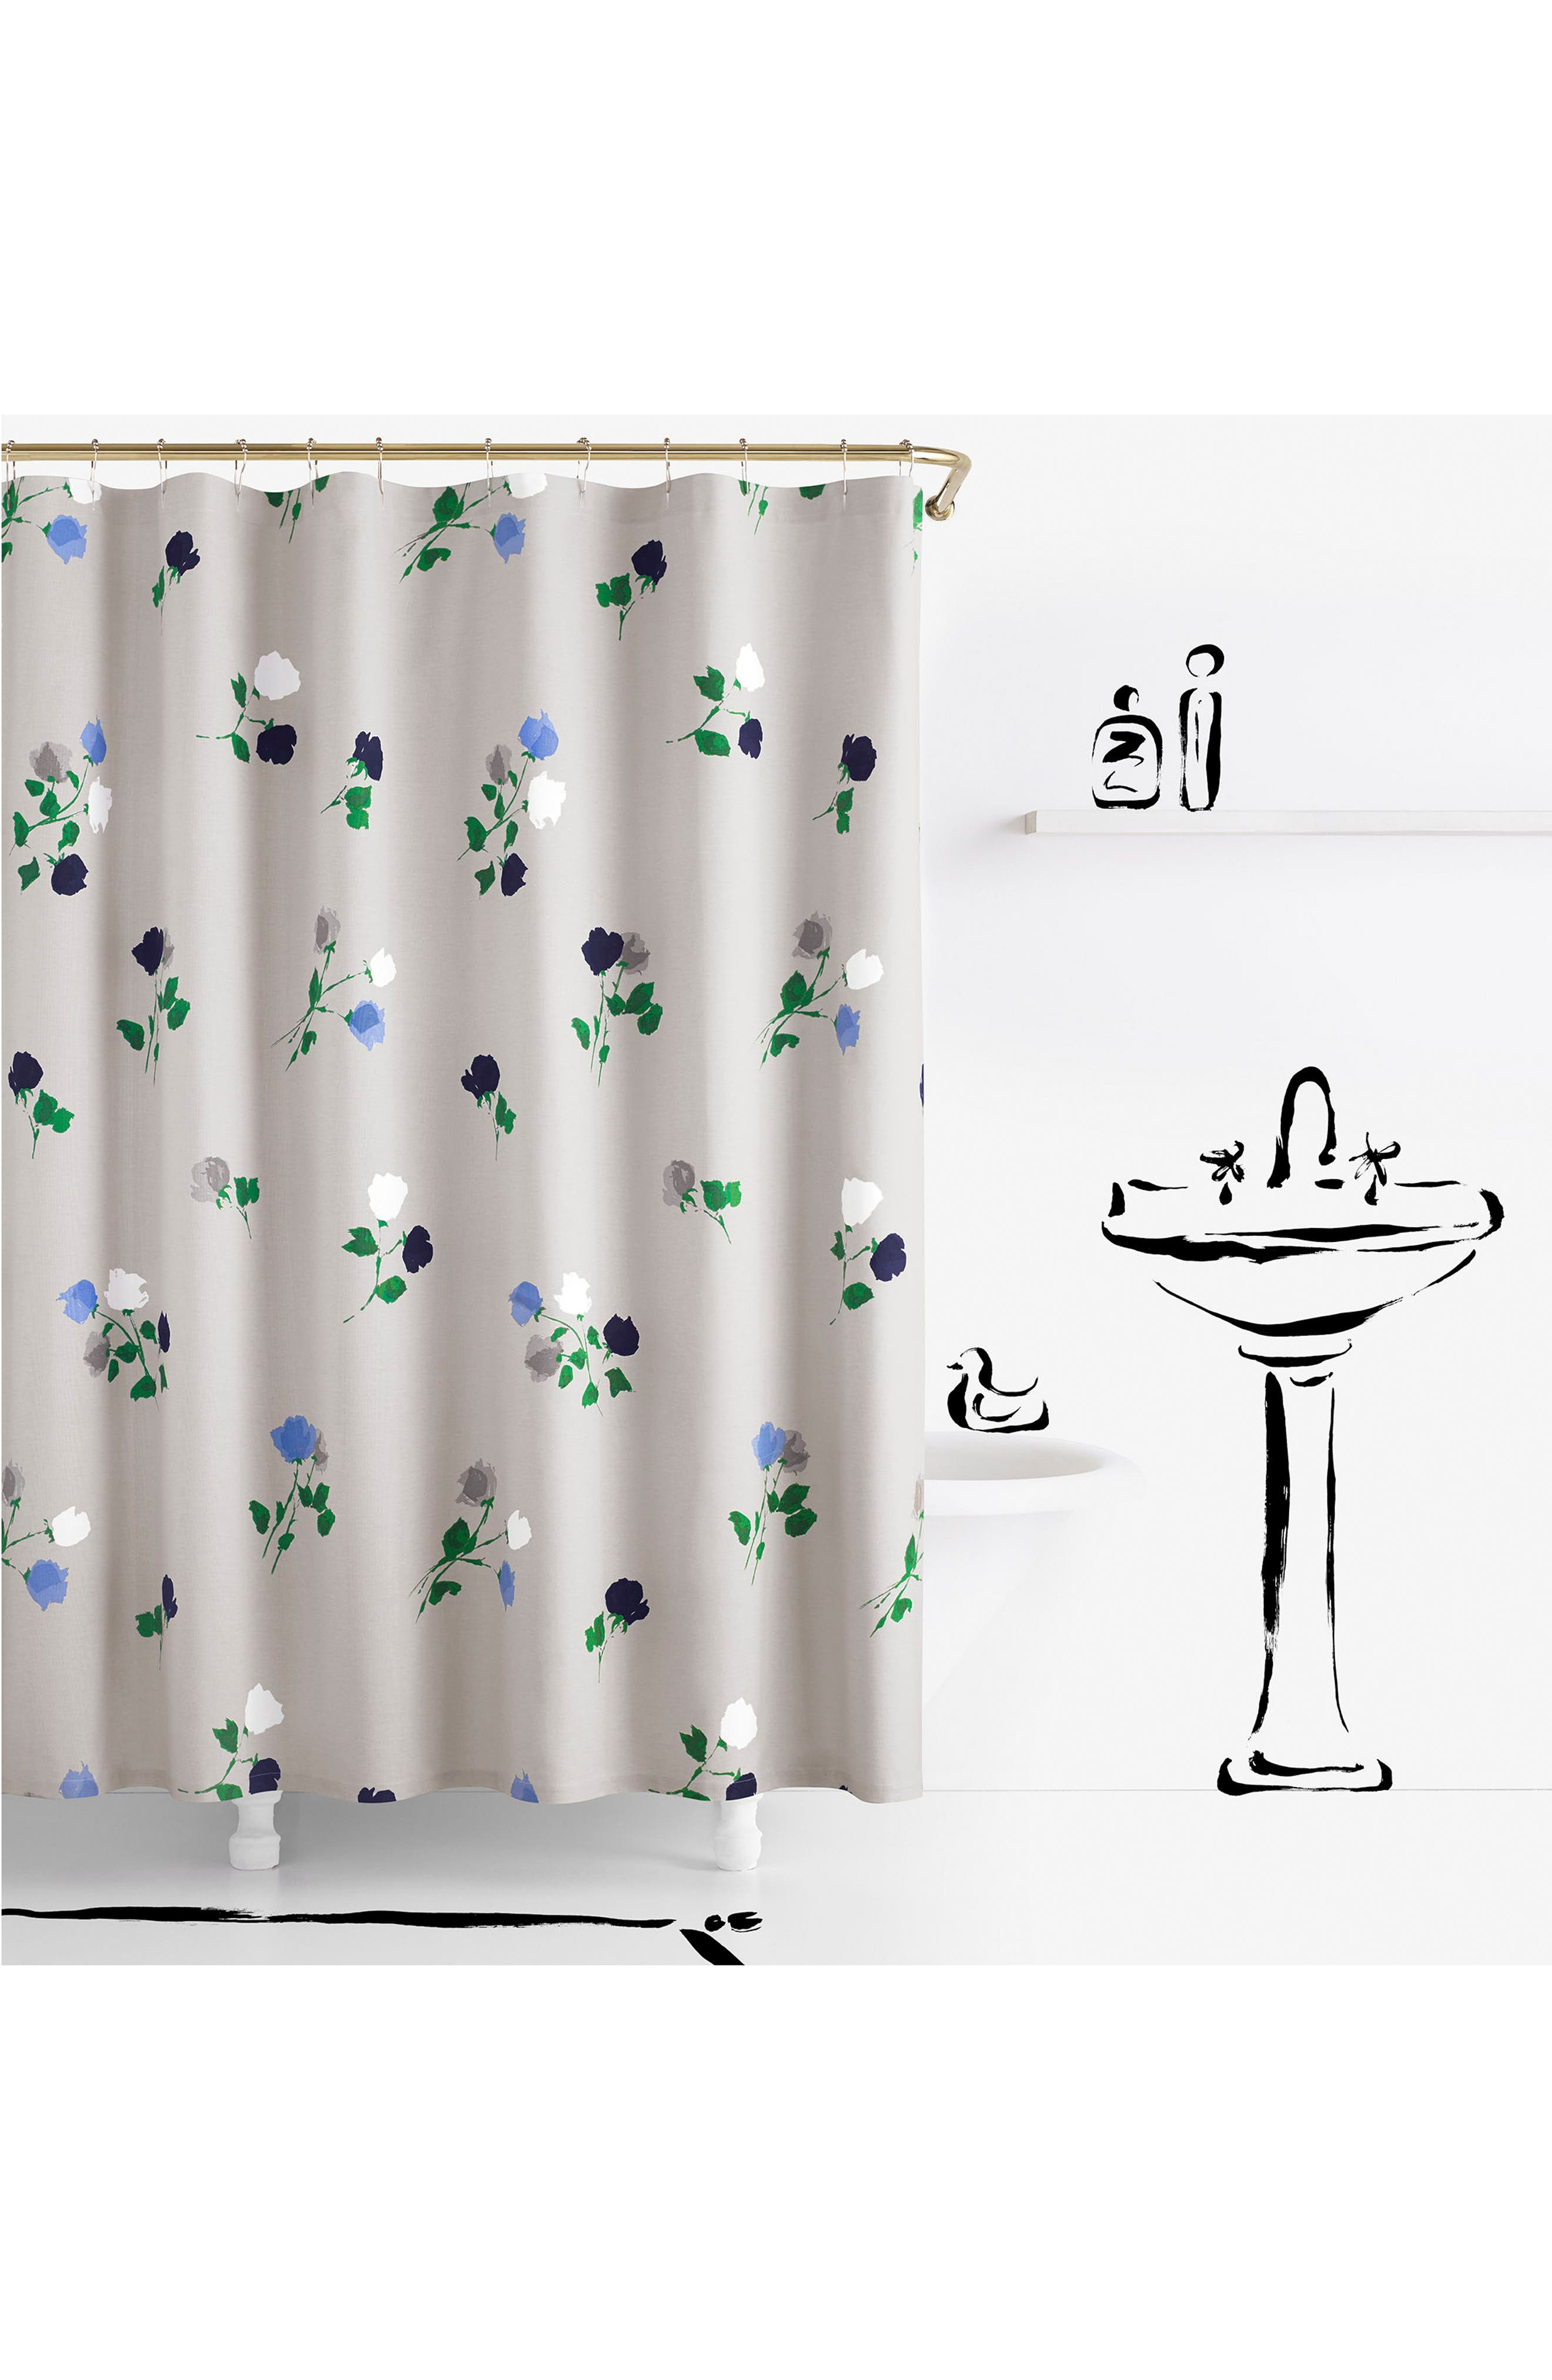 Alternate Image 1 Selected - kate spade new york willow court shower curtain